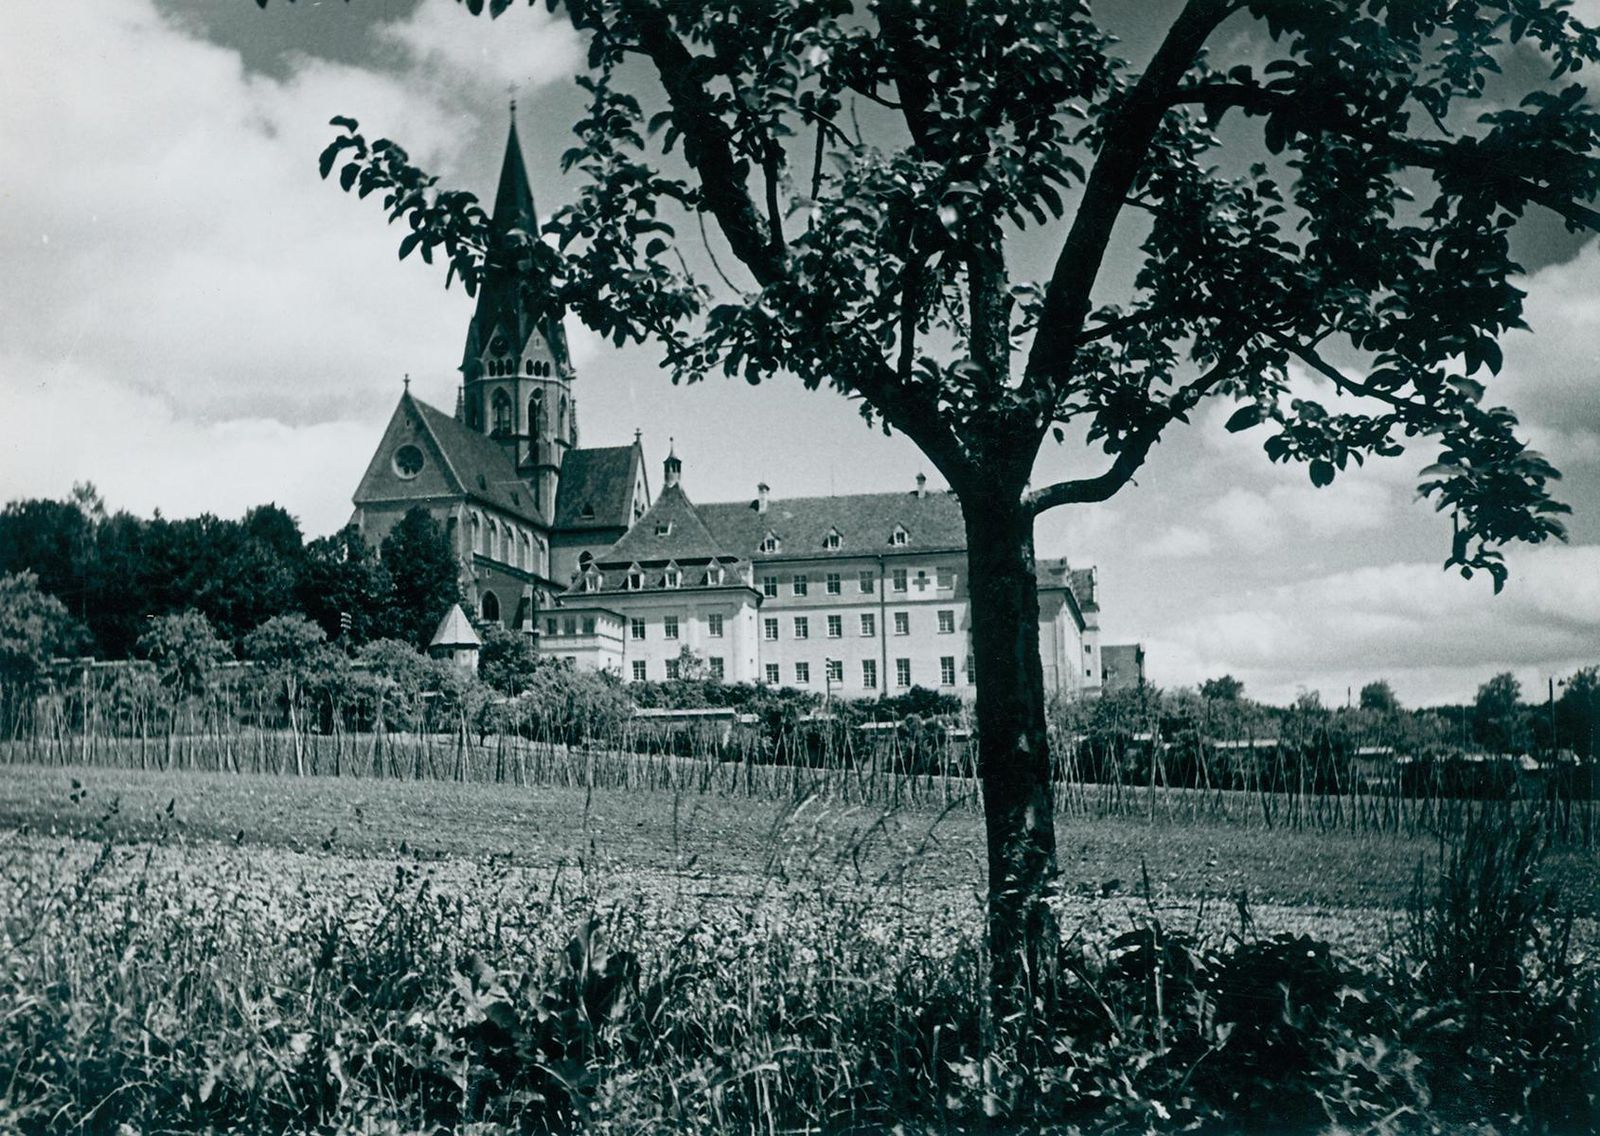 When a Bavarian Monastery Provided a Home to Jewish Refugees